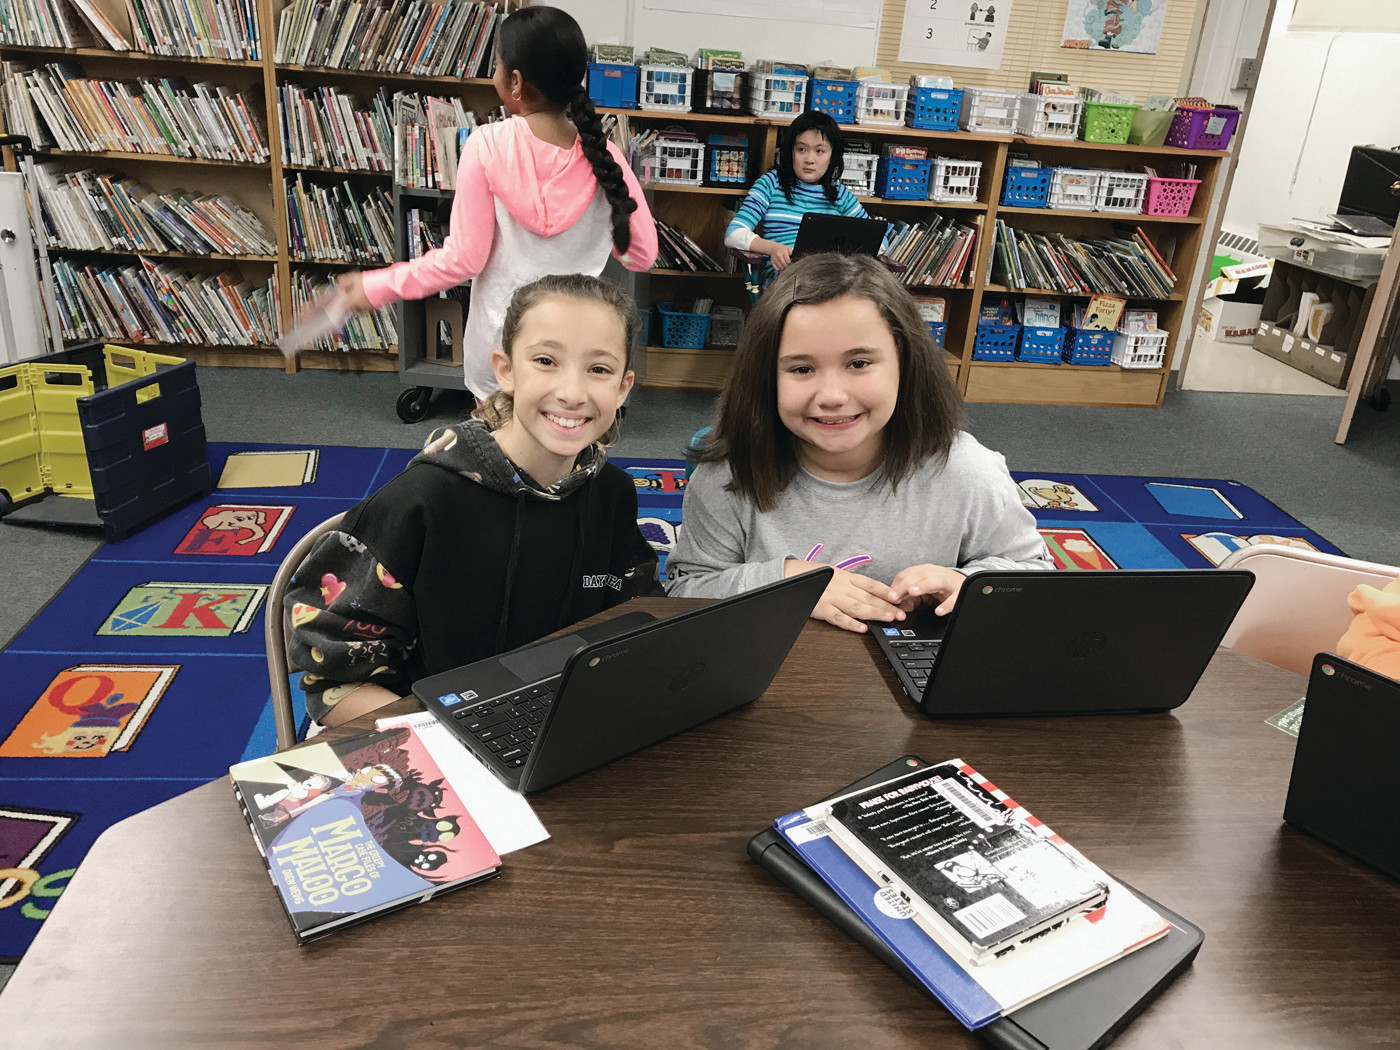 BEAMING FROM DEVICE TO DEVICE: Dutemple Elementary students show their coding prowess during library period.